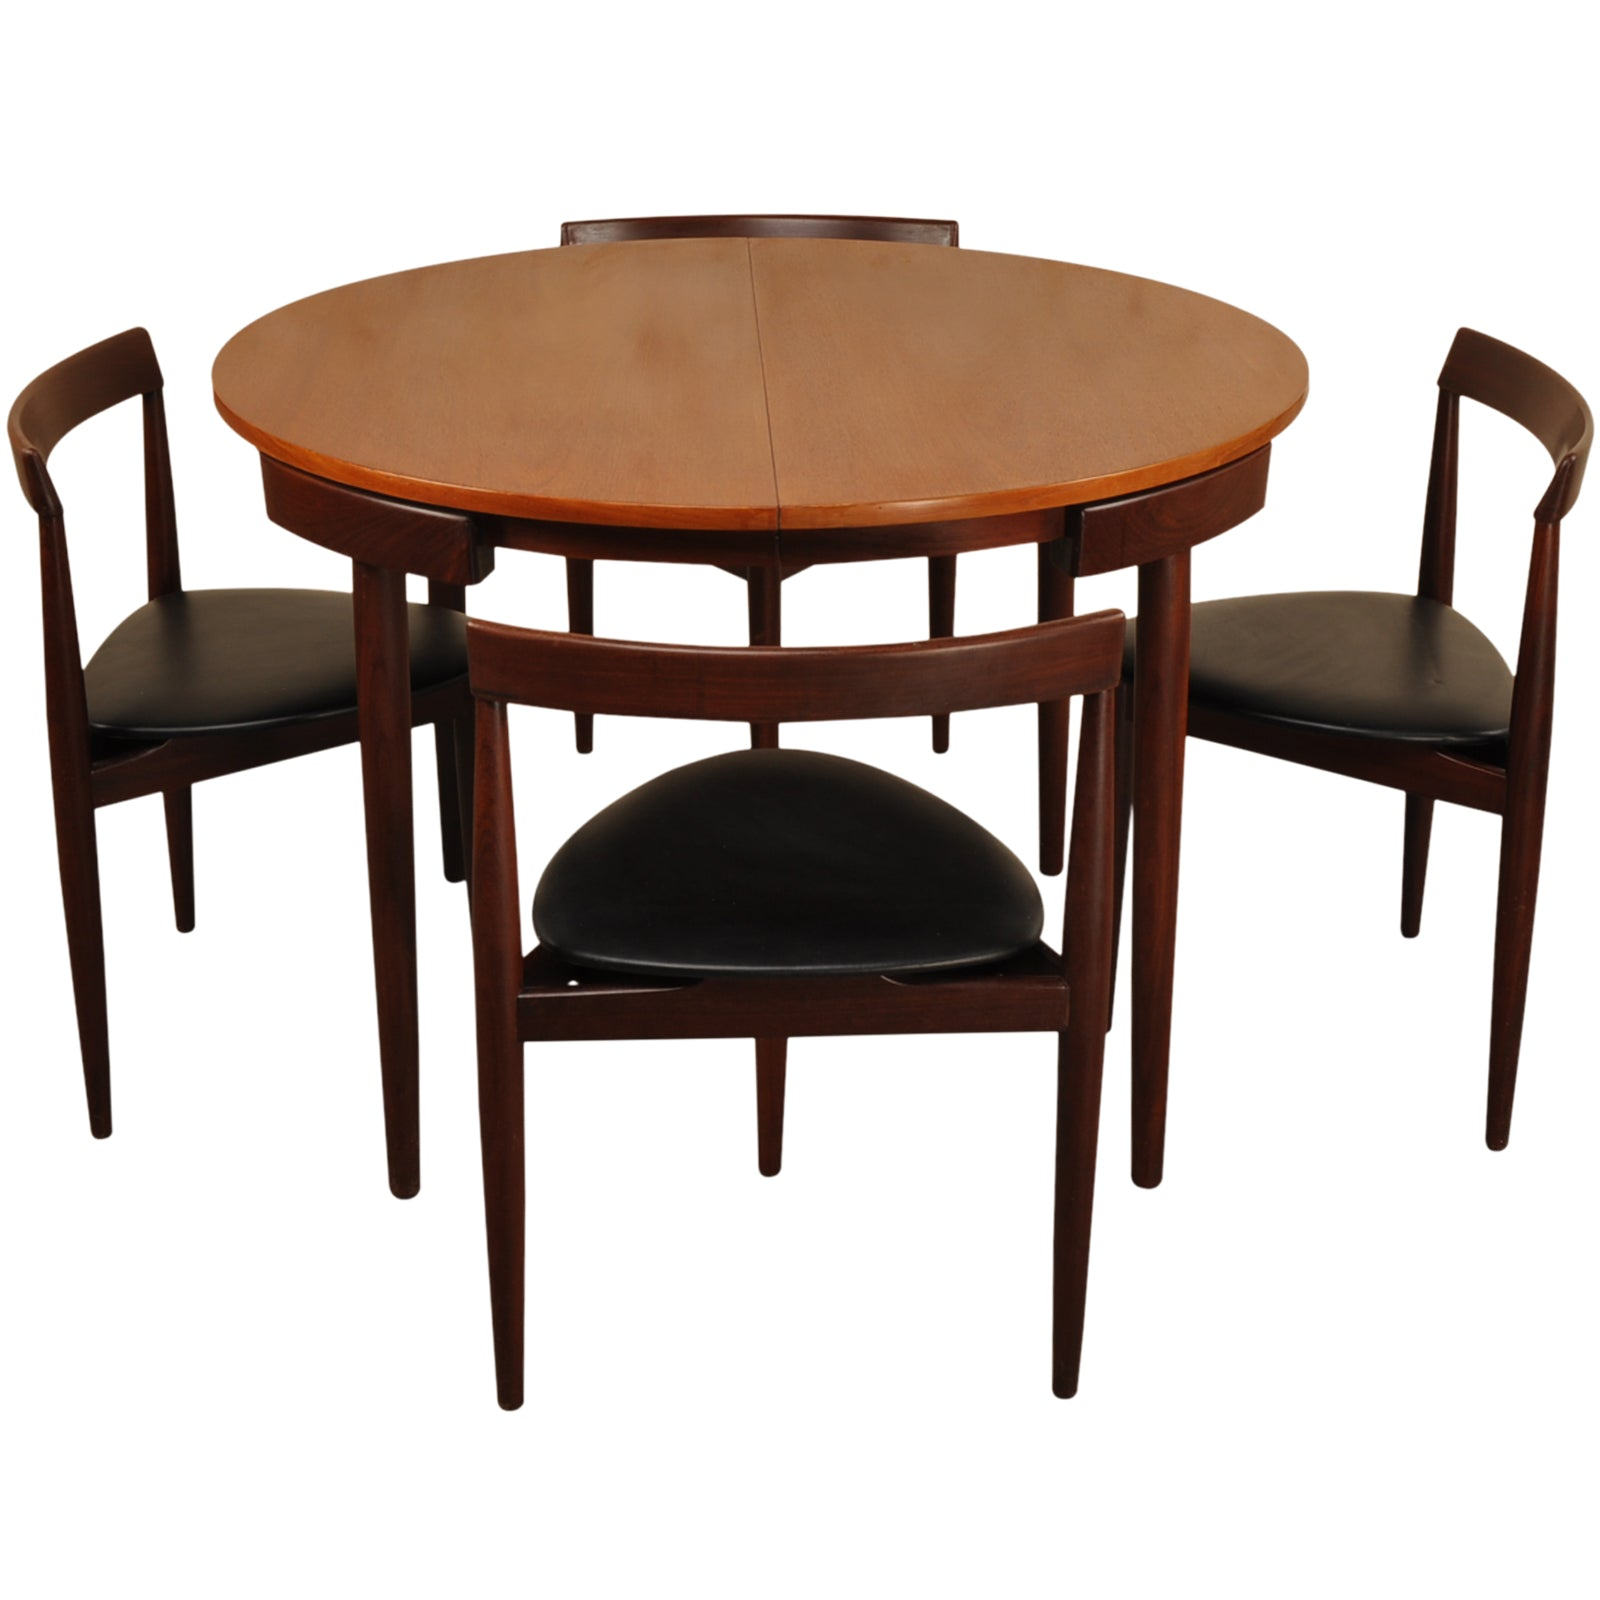 RESERVED. Hans Olsen Extendable Dinette Dining Table with 6 tripod chairs for Frem Rojle Mobelfabrik